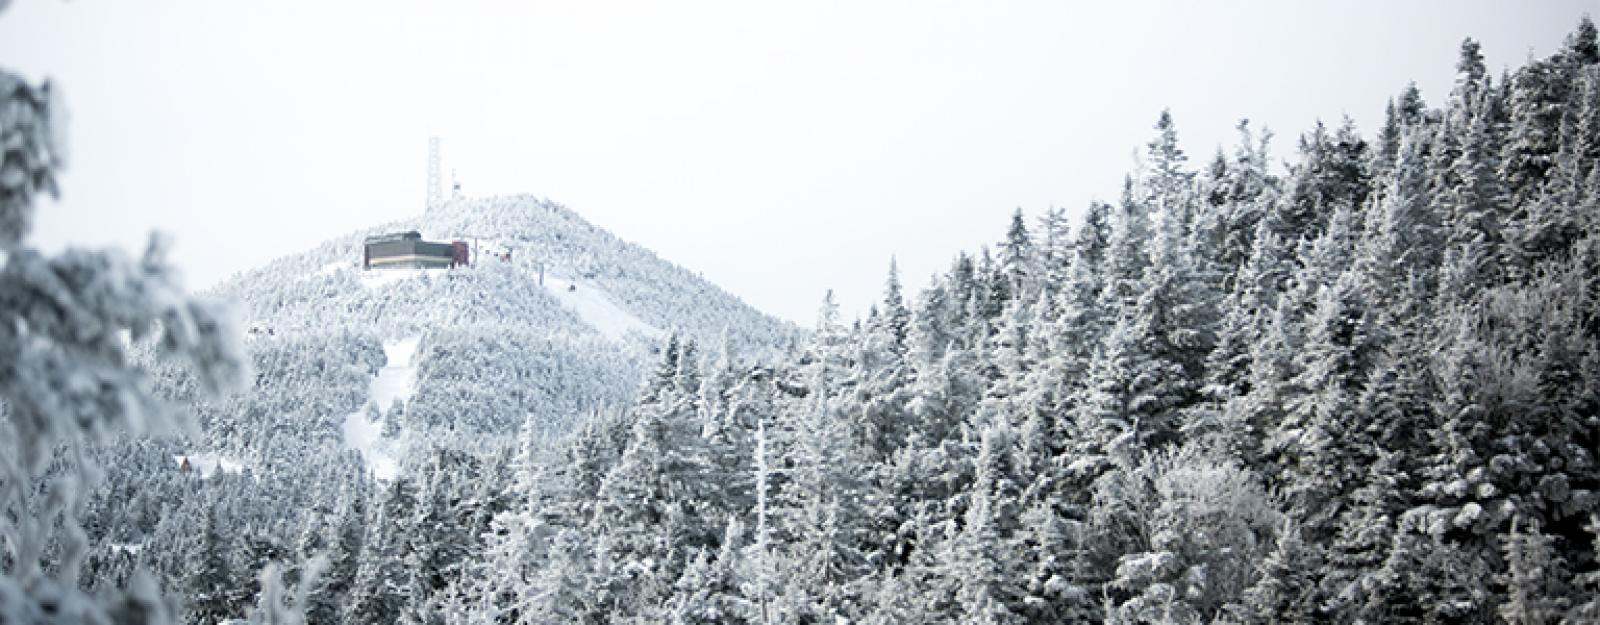 What Winter 2020 21 Operations Will Look Like At Killington And Pico